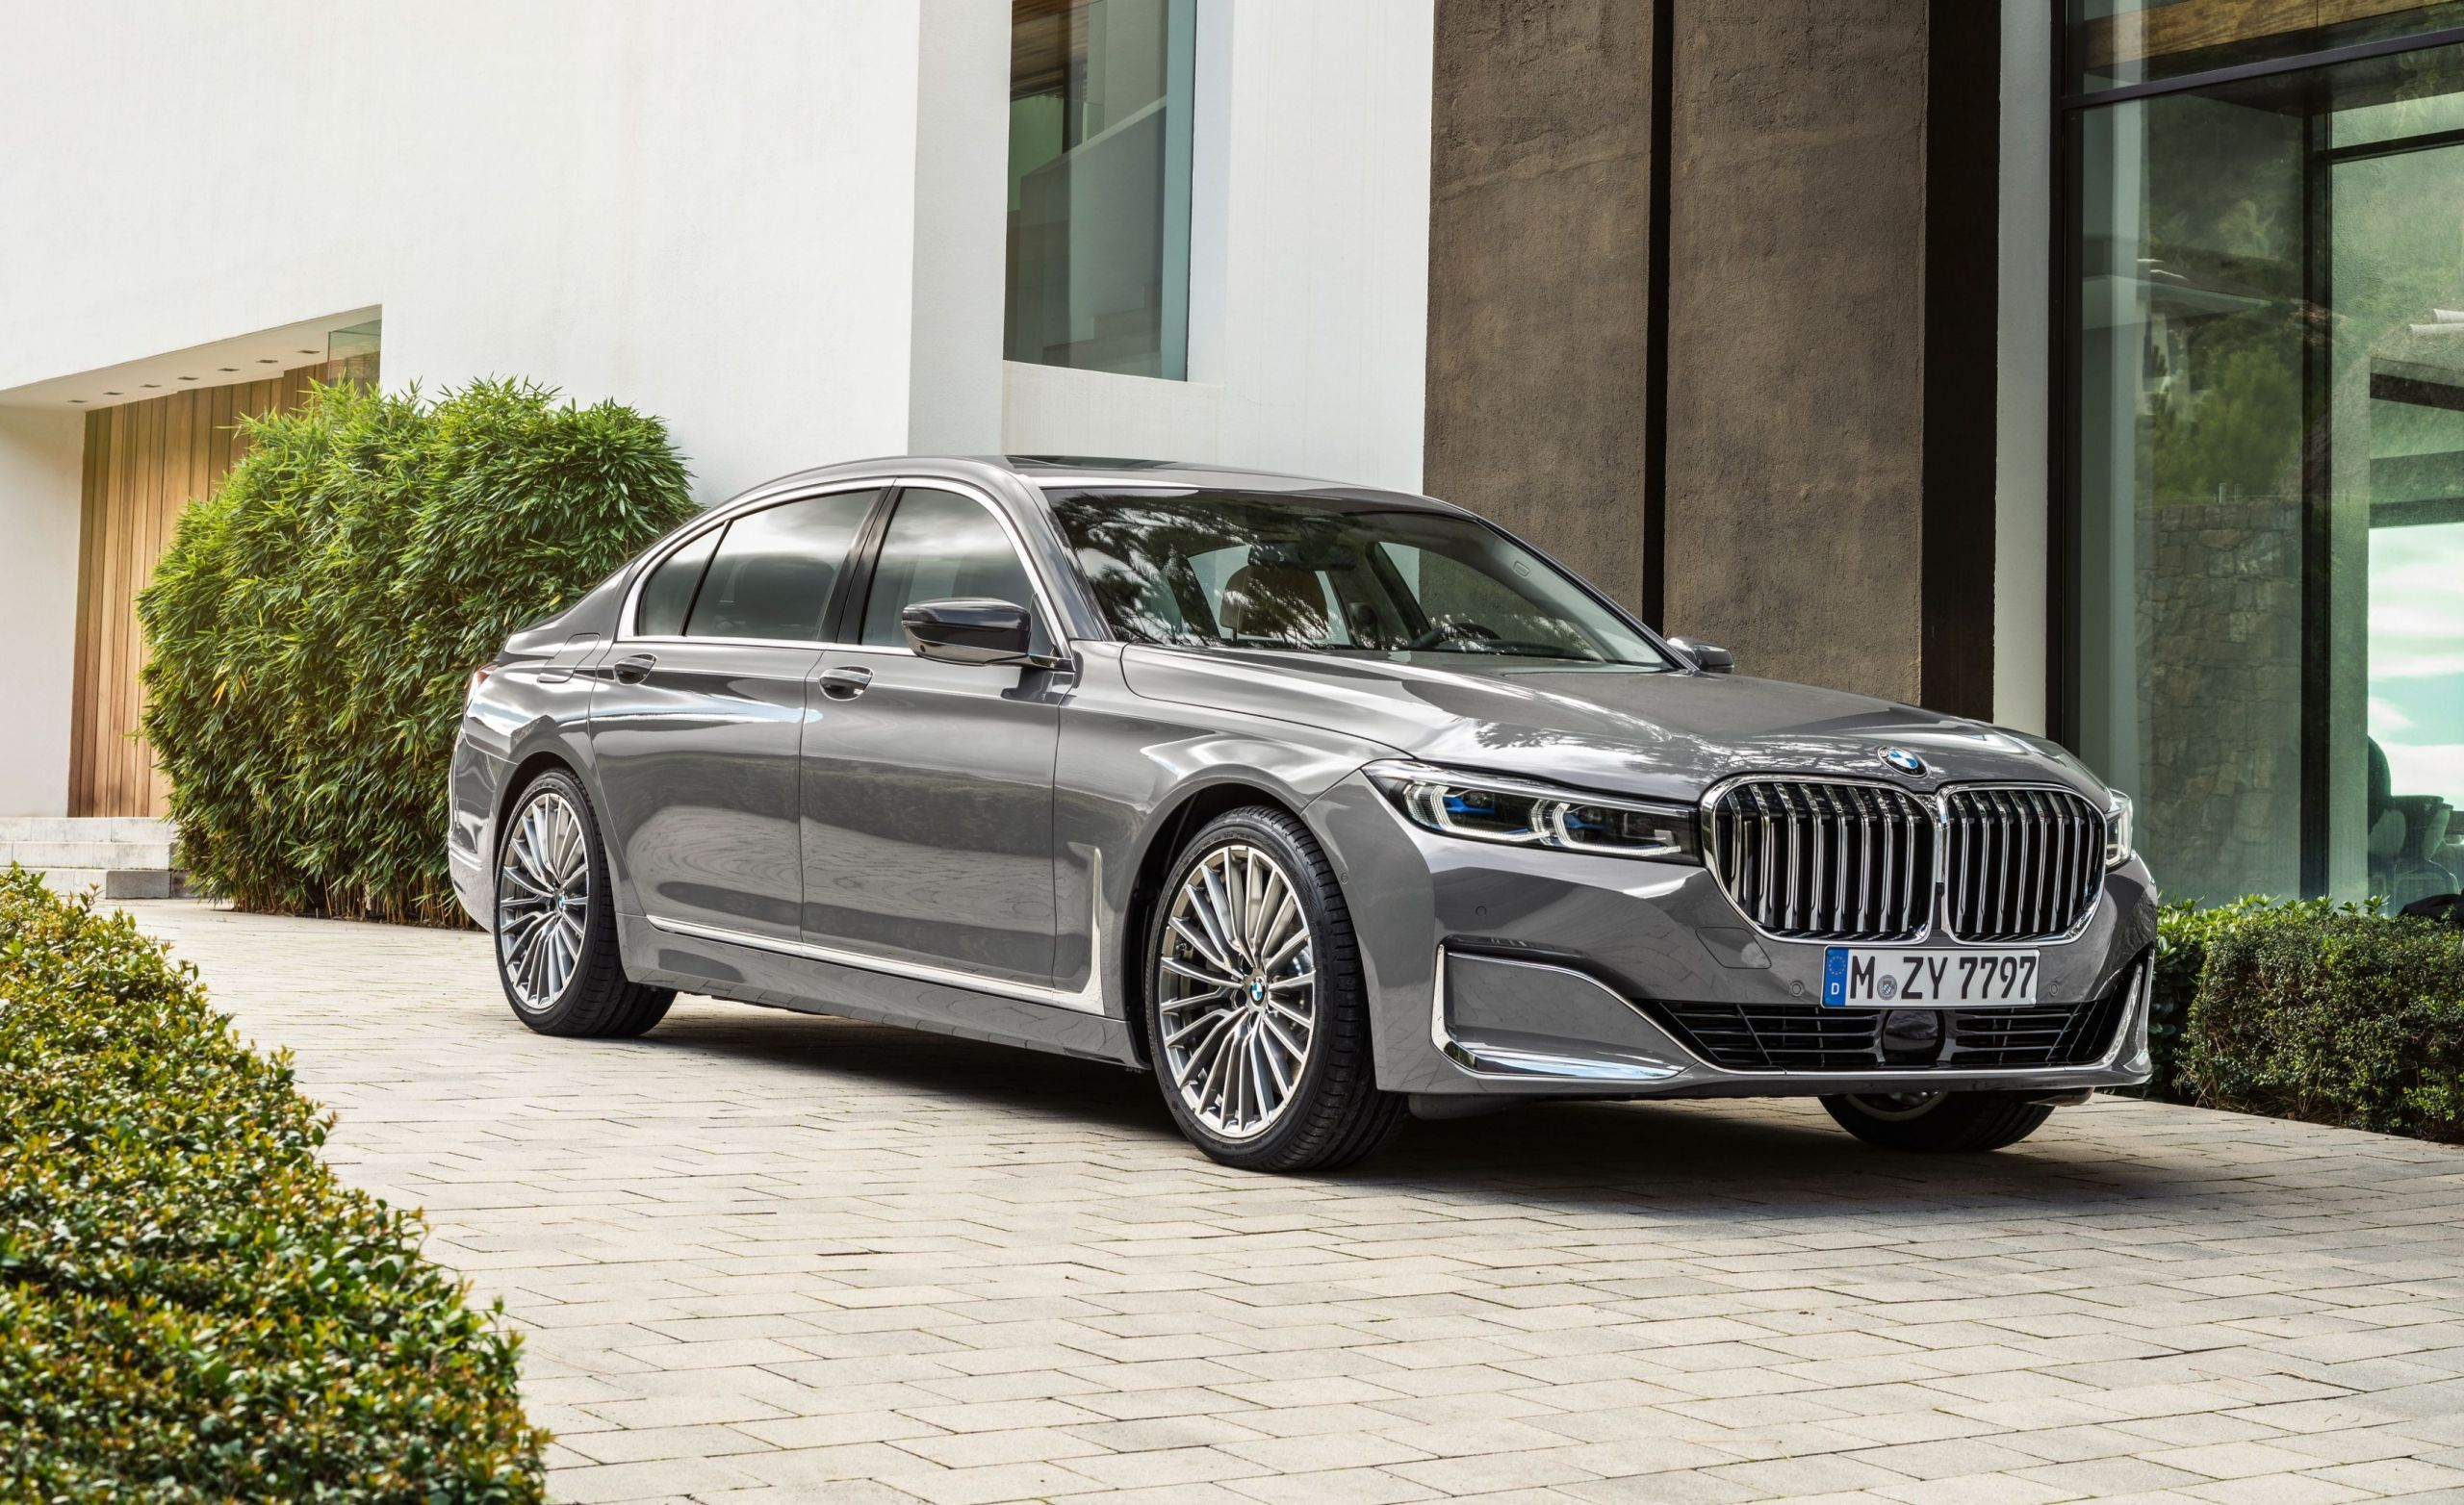 2020 Bmw 7 Series New Model And Performance Bmw 7 Series Bmw